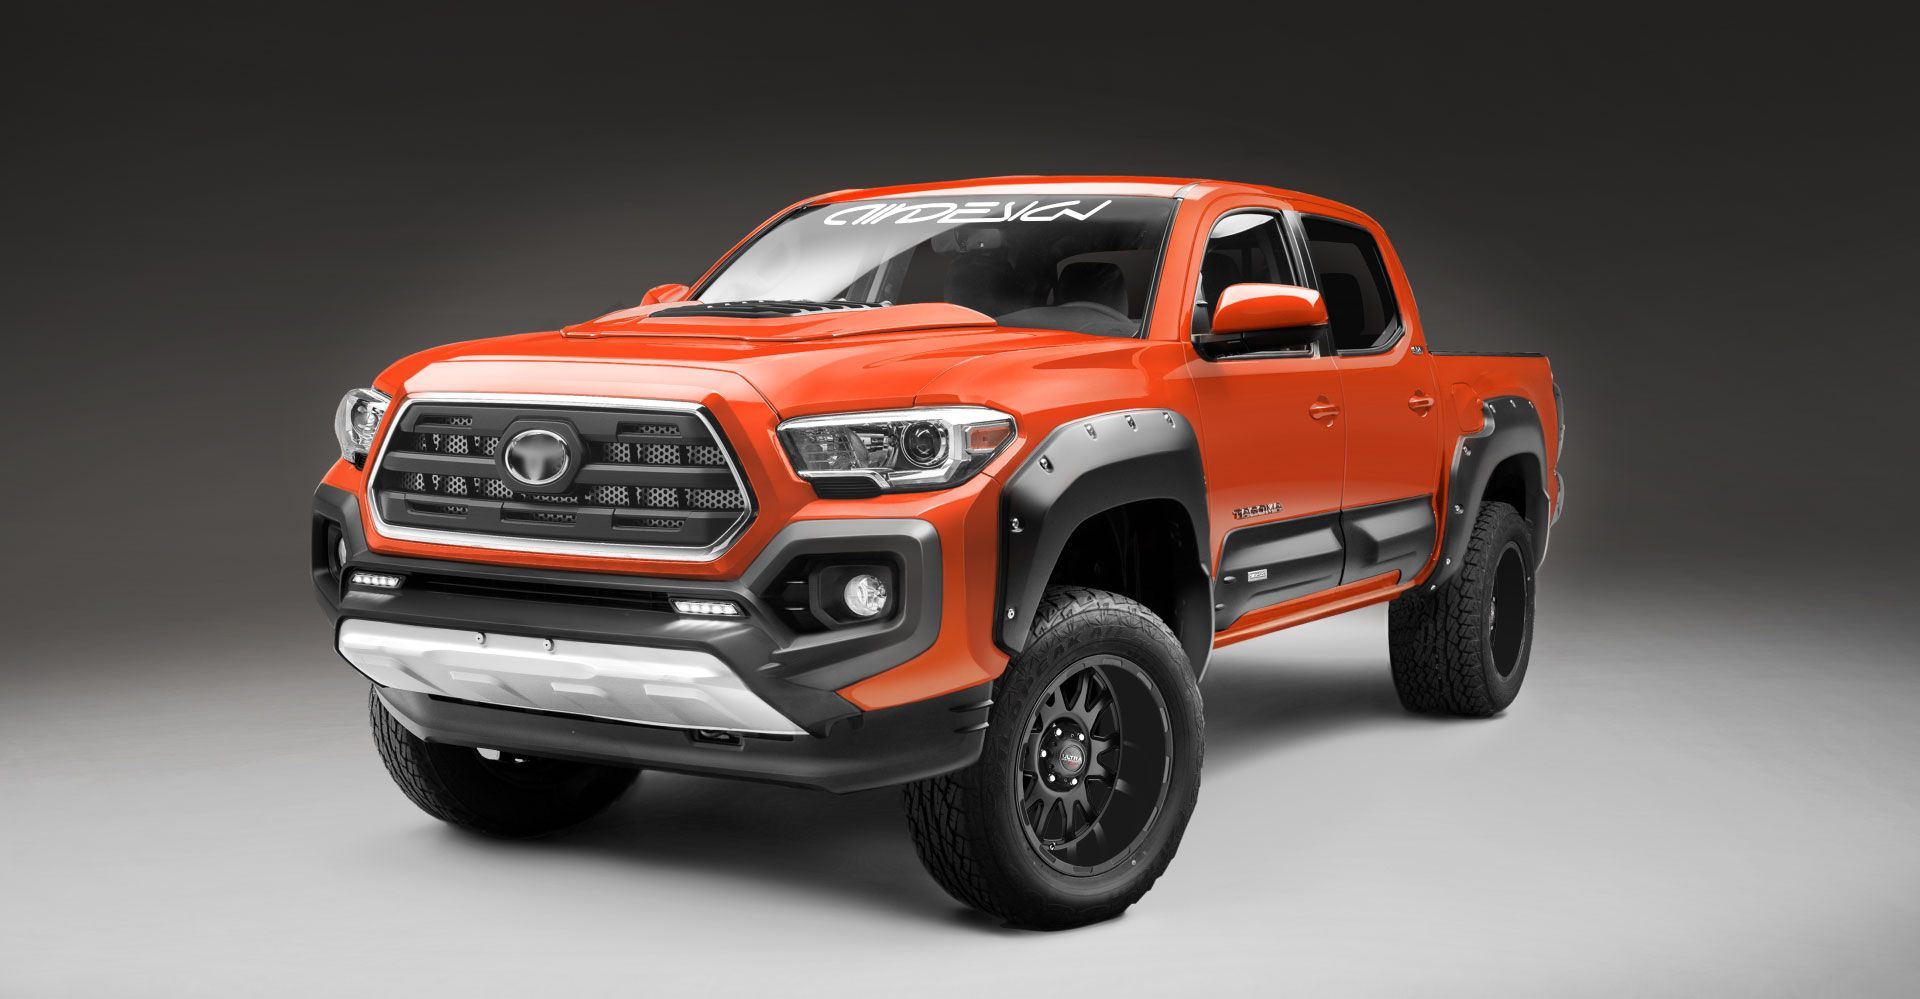 Toyota Tacoma Air Design Usa The Ultimate Accessories Collection For Off Road And Street Toyota Tacoma Toyota Tacoma Accessories Tacoma Truck